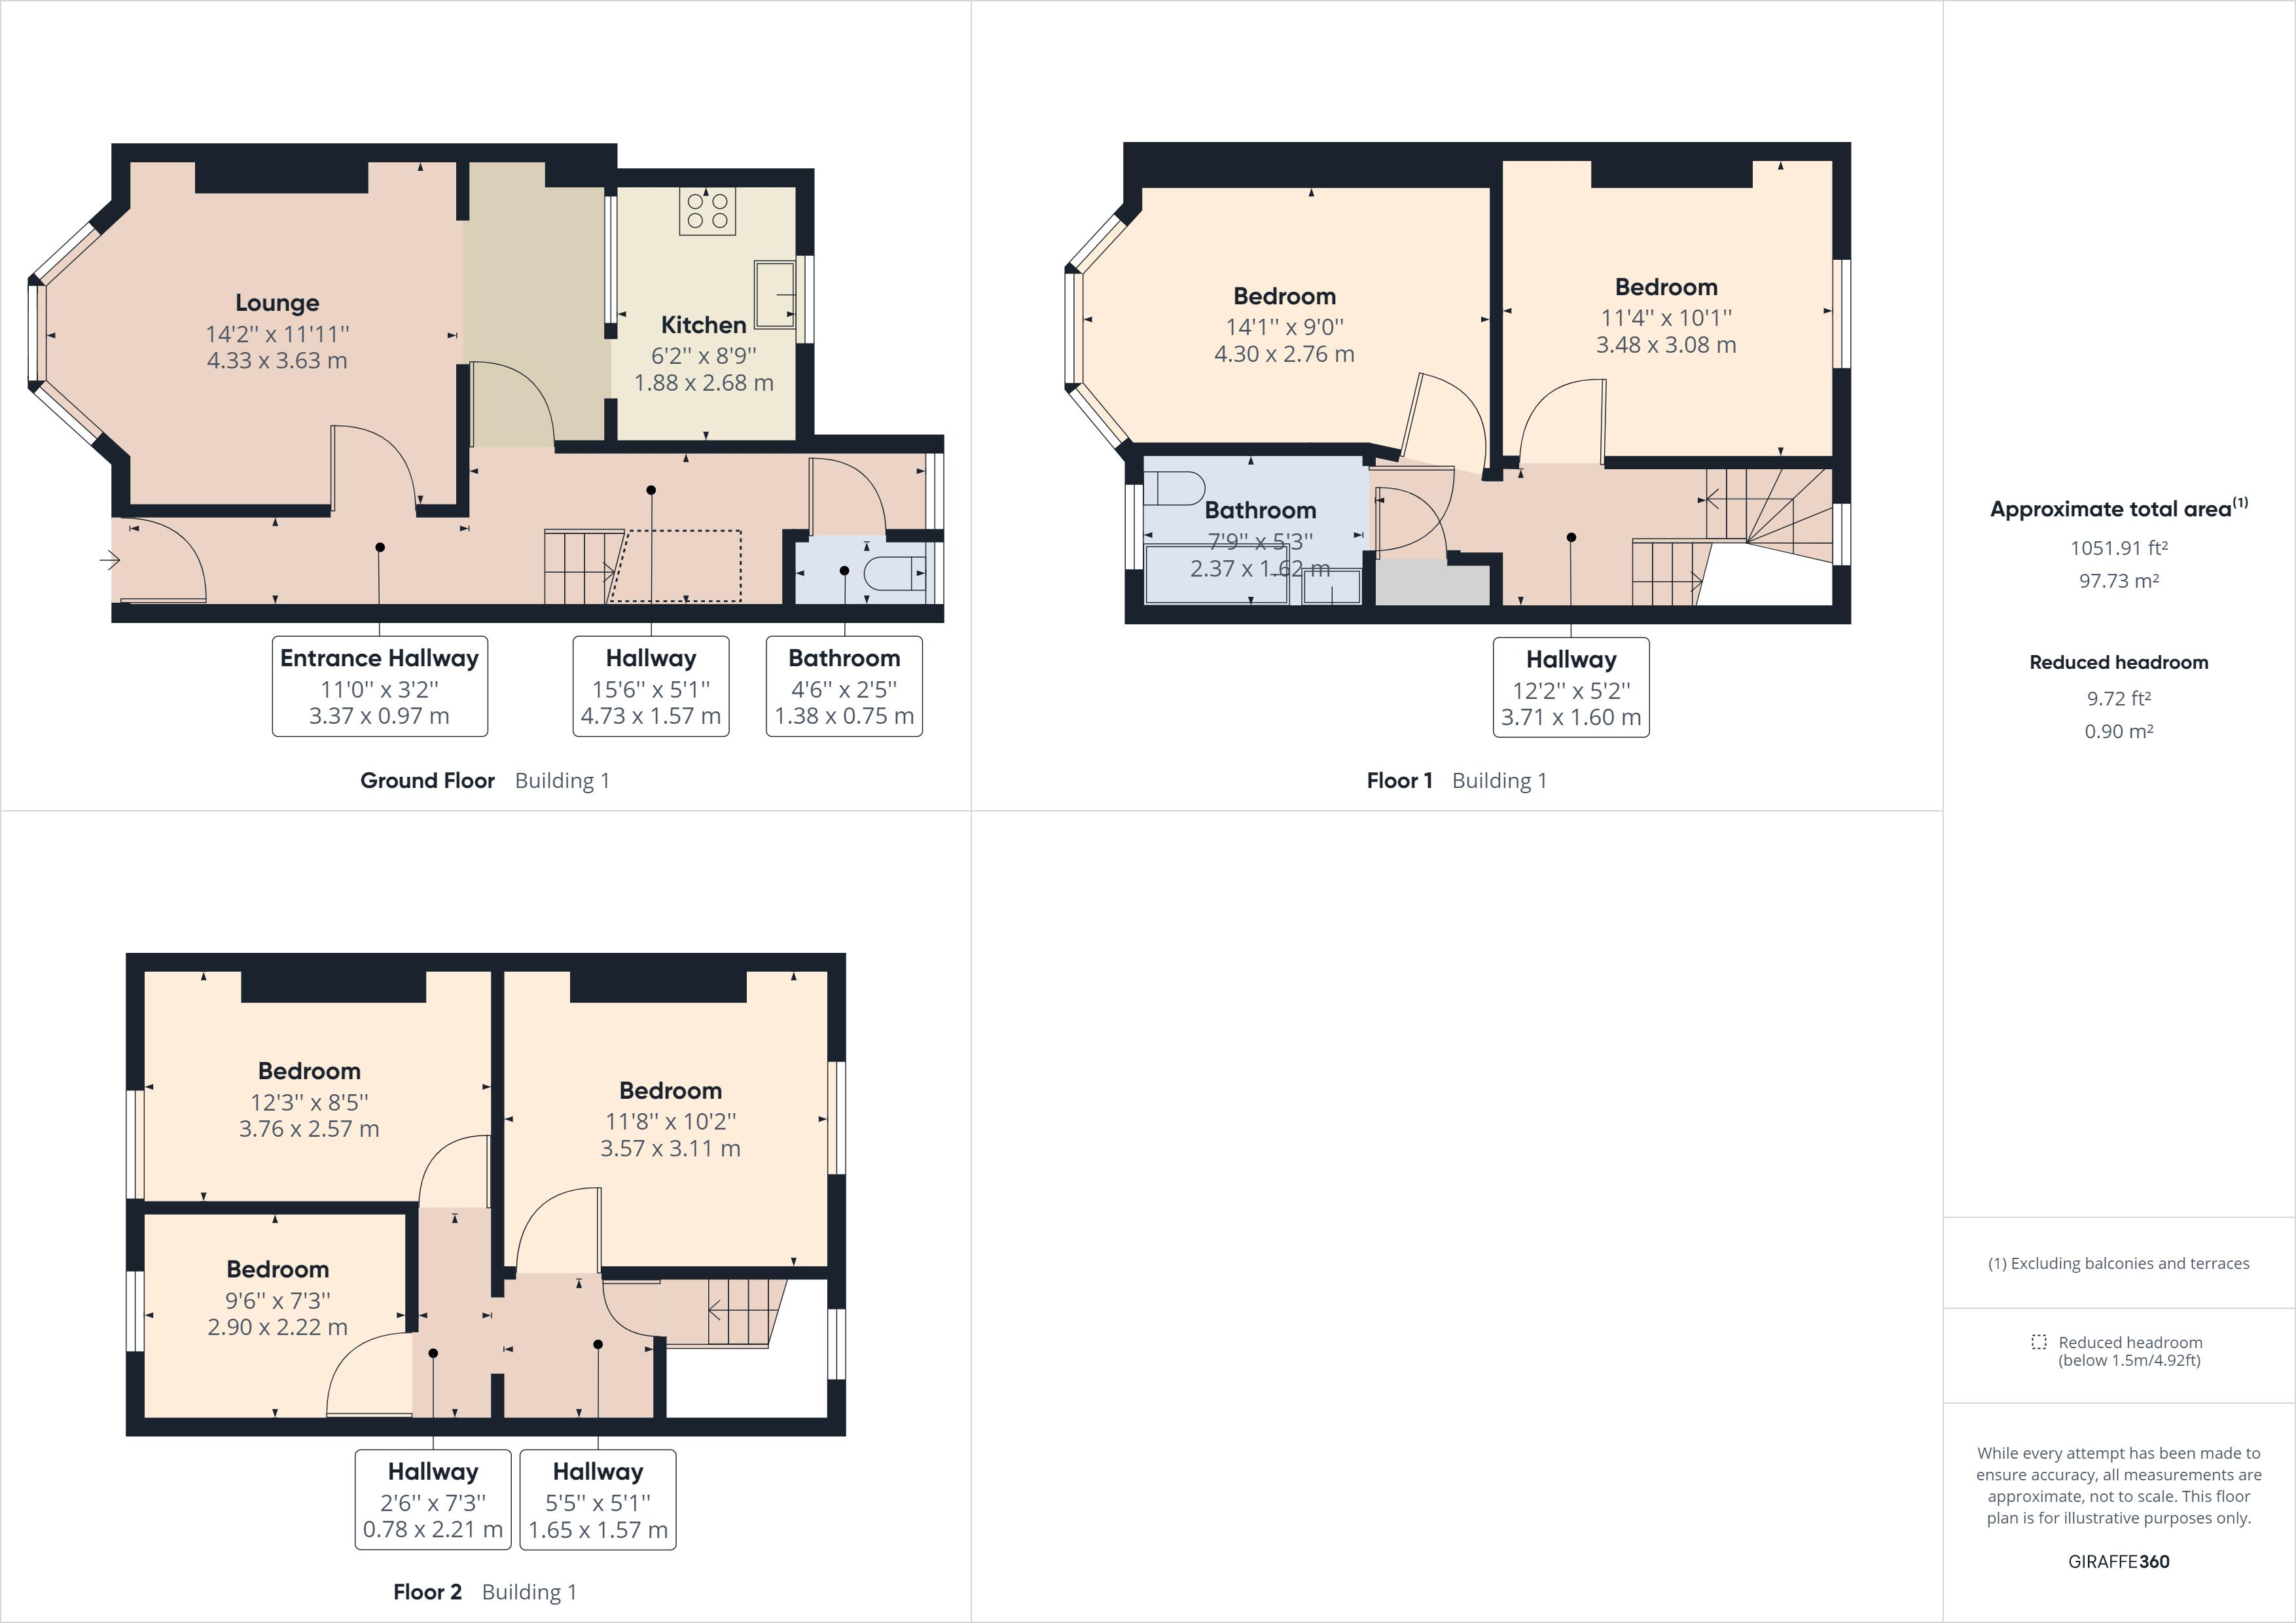 Floor plans for Vere Road, Brighton property for sale in London Road, Brighton by Coapt